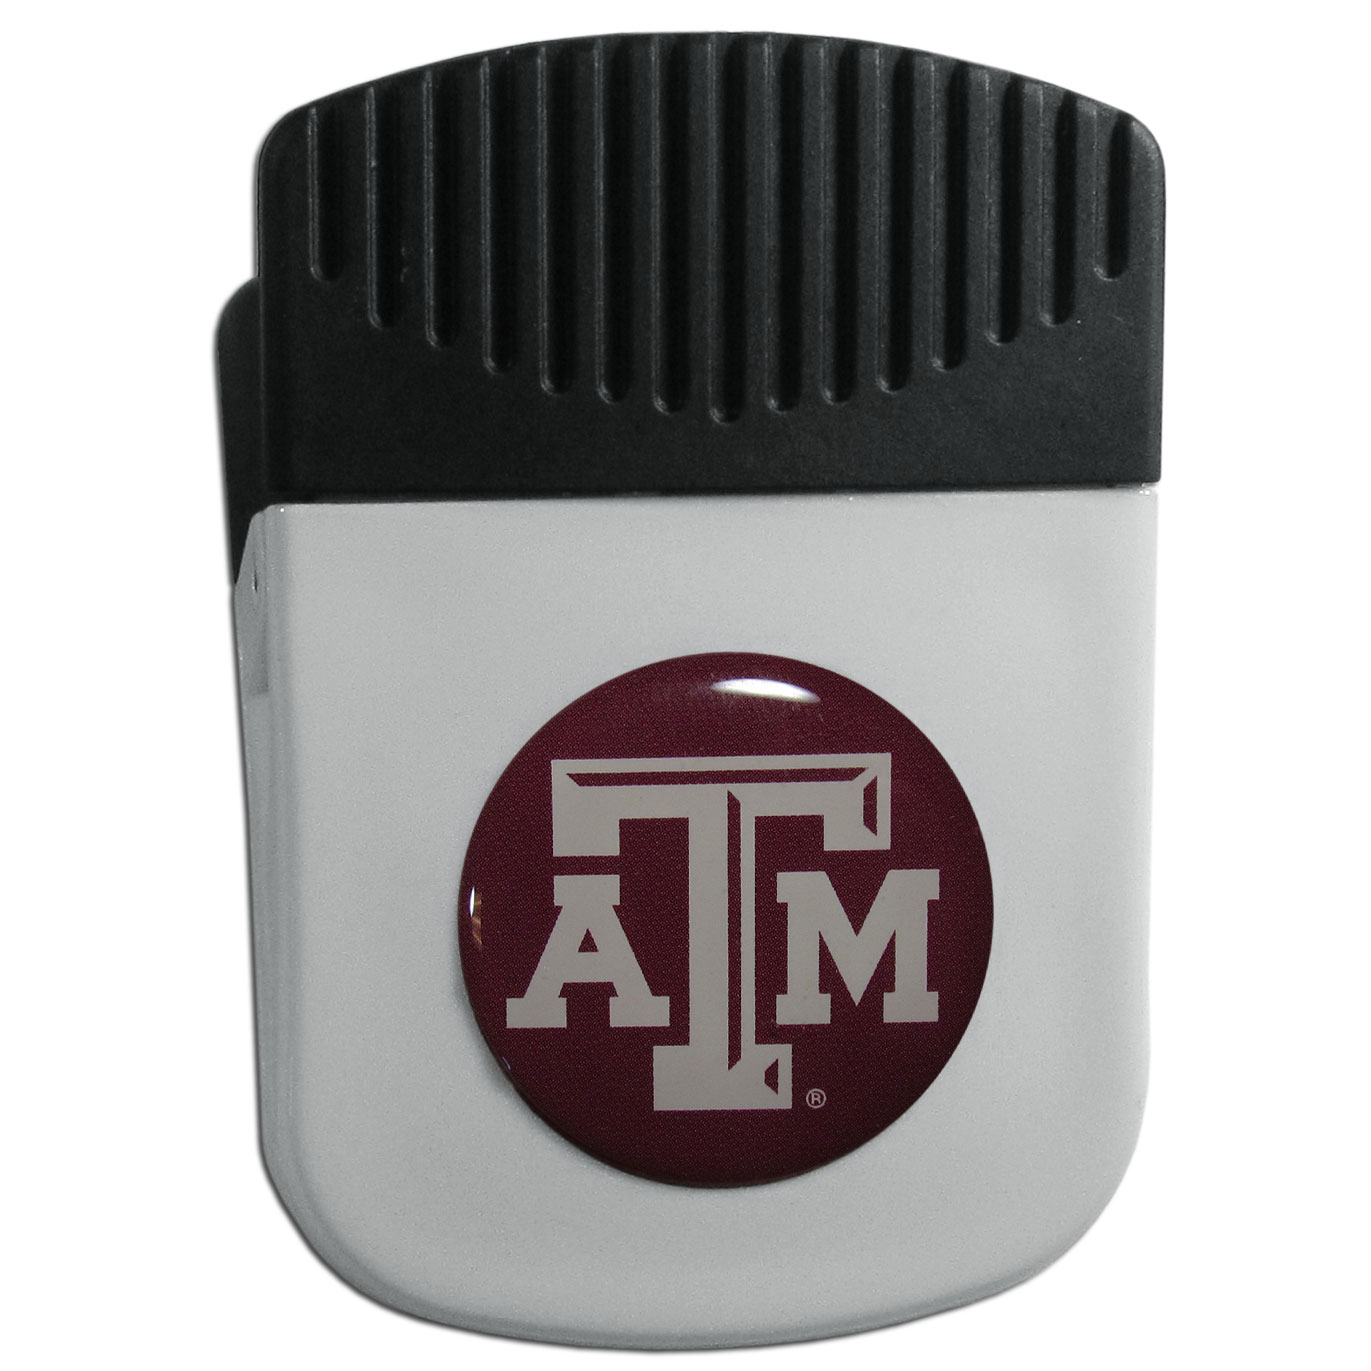 Texas A and M Aggies Chip Clip Magnet - Use this attractive clip magnet to hold memos, photos or appointment cards on the fridge or take it down keep use it to clip bags shut. The magnet features a domed Texas A & M Aggies logo.